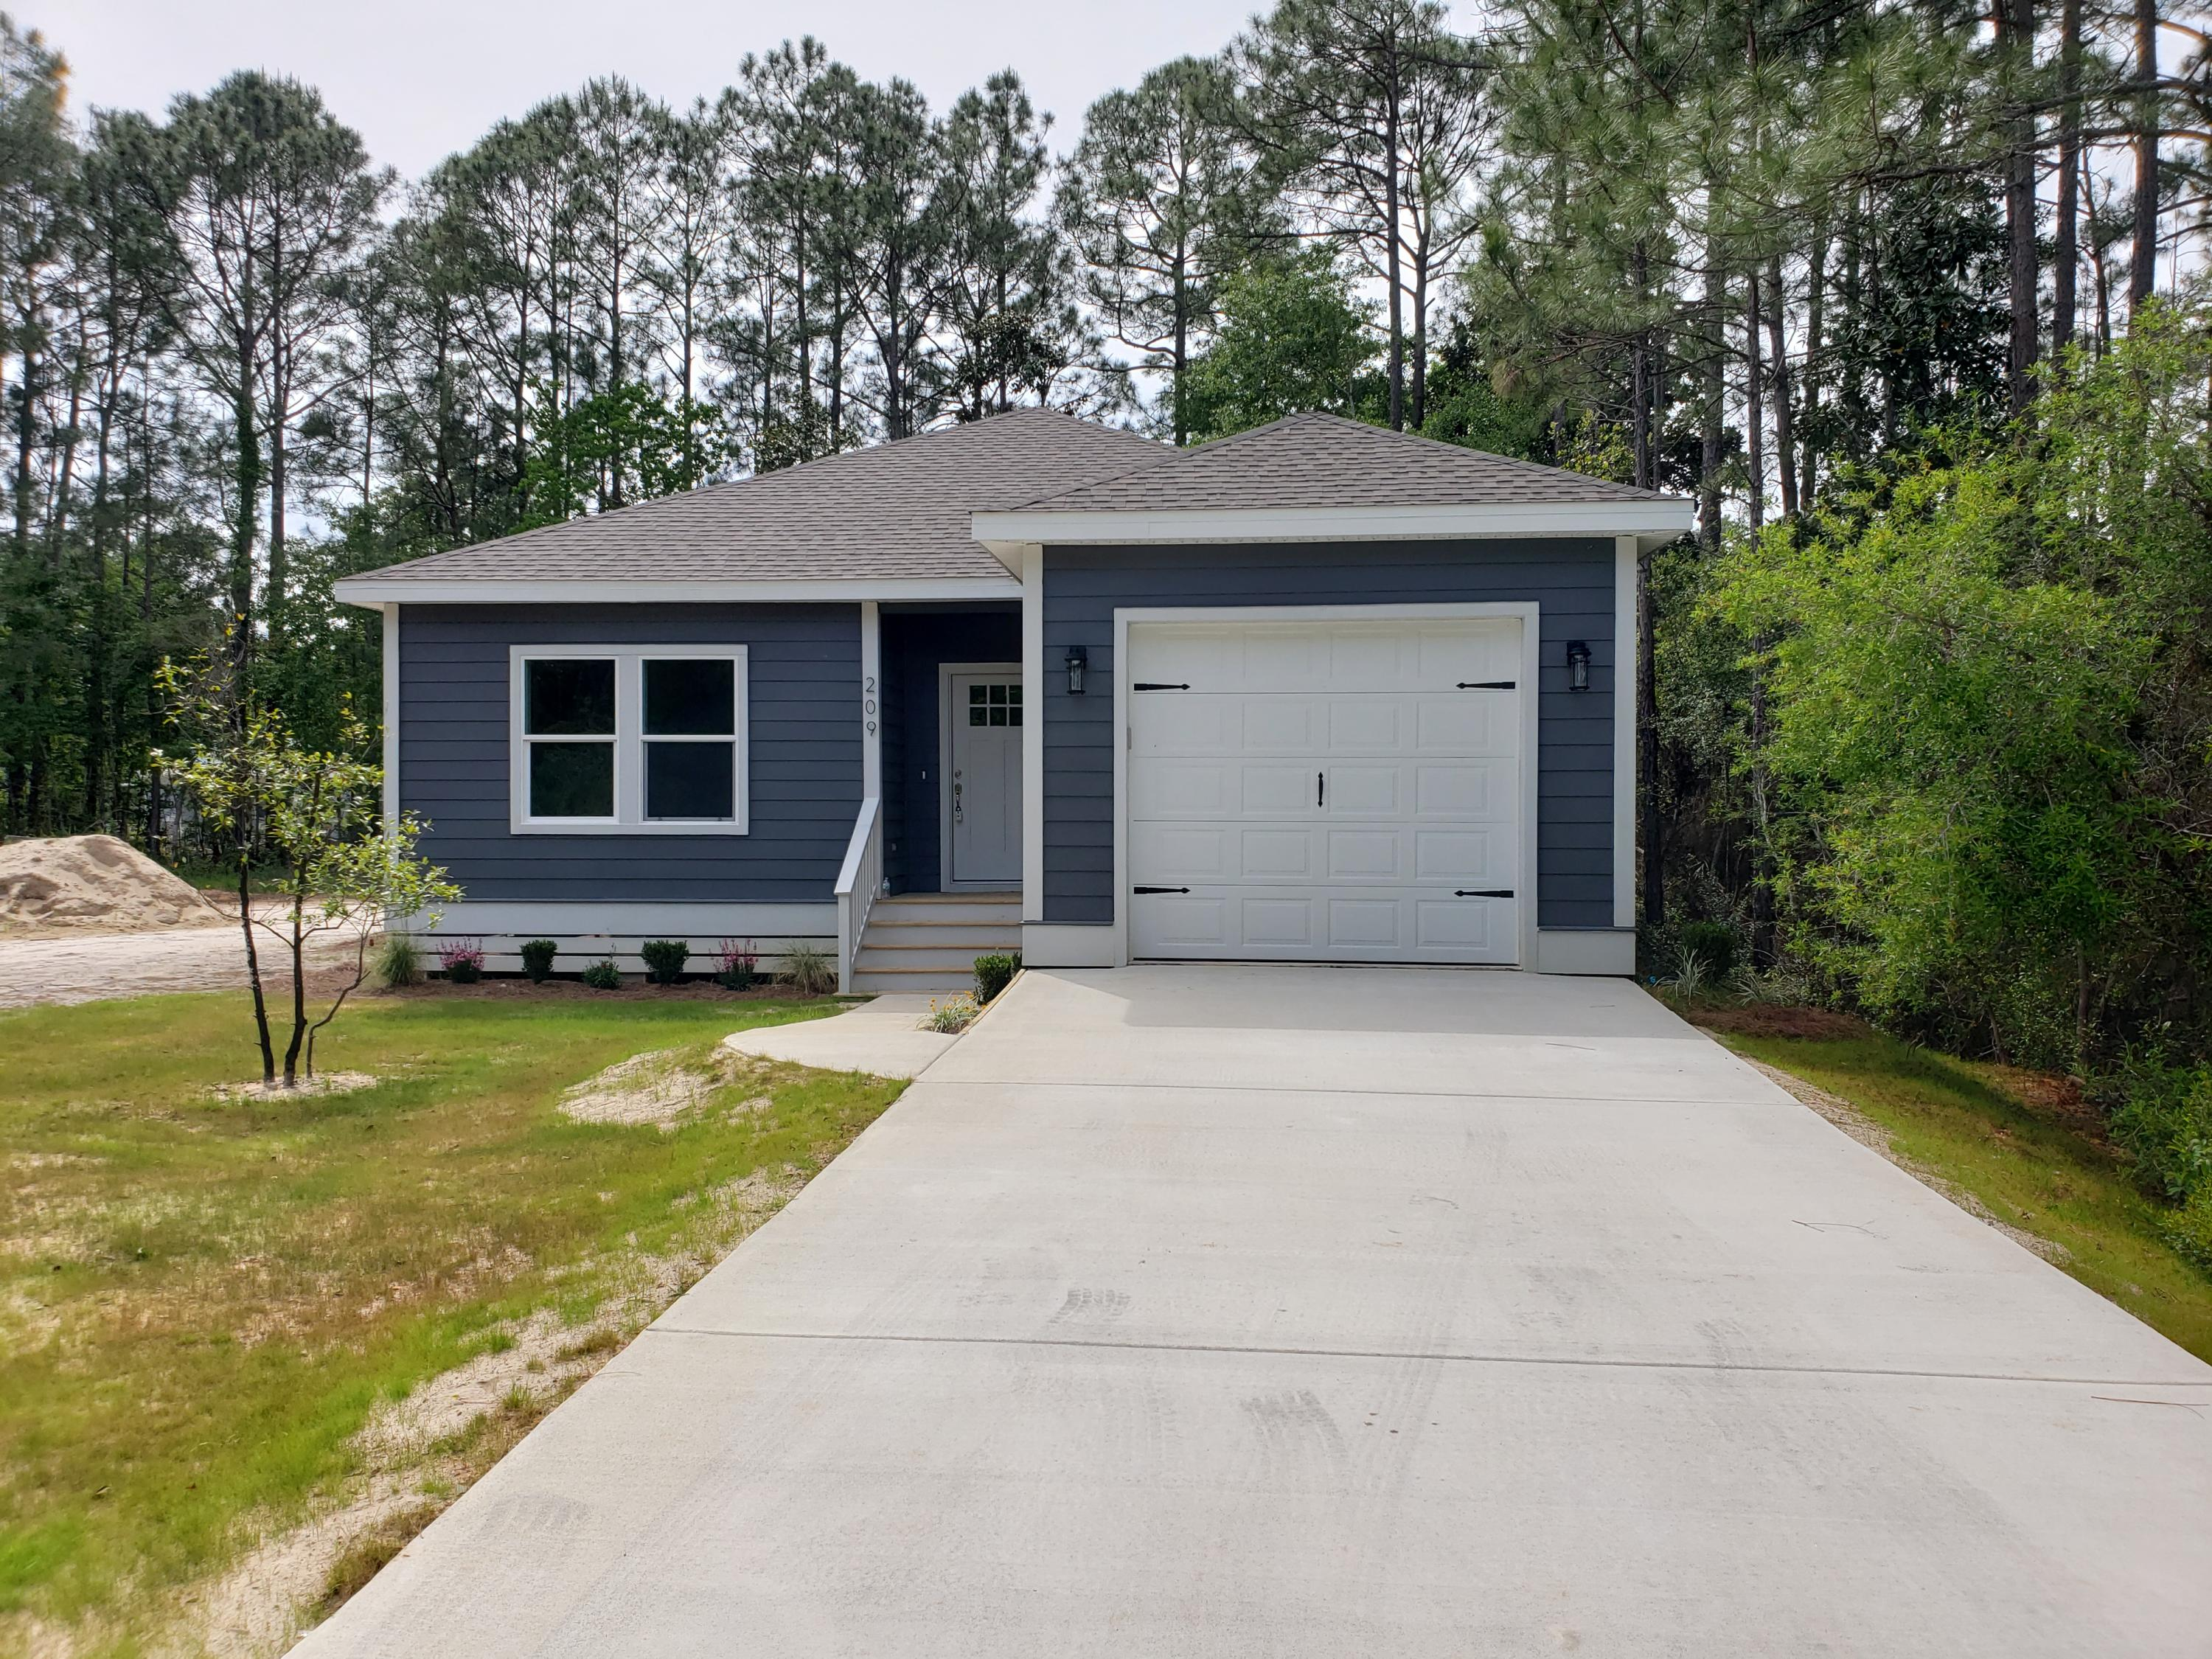 NEW CONSTRUCTION in the heart of Santa Rosa Beach! This area is teeming with new development, don't miss your chance to get in on the affordable housing action this neighborhood offers, while enjoying the spoils of a newly constructed home with fine finishes. Beautiful gray toned luxury vinyl plank floors throughout the house. Spacious open concept kitchen/living area. Kitchen with large center island features white shaker cabinets, white quartz counter tops, stainless steel appliances, and large pantry. Enjoy your morning coffee on the covered back deck off the living room. Master bedroom has a large walk in closet, while the master bathroom features double vanity and lots of natural light. 2 guest bedrooms off the foyer share a guest bathroom with unique floating vanity.